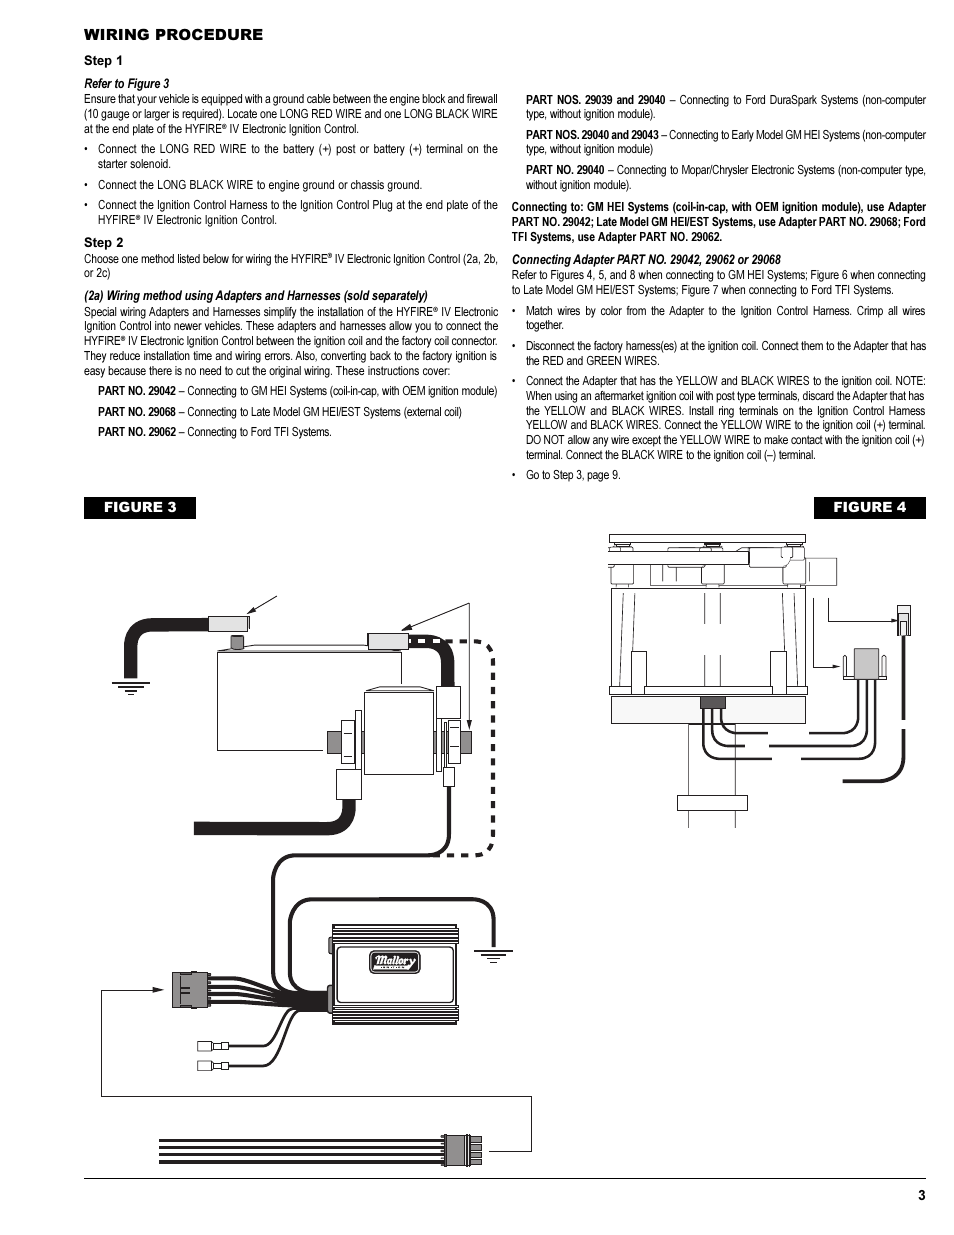 wiring procedure figure 4 12v battery mallory ignition mallory hyfire iv series ignition